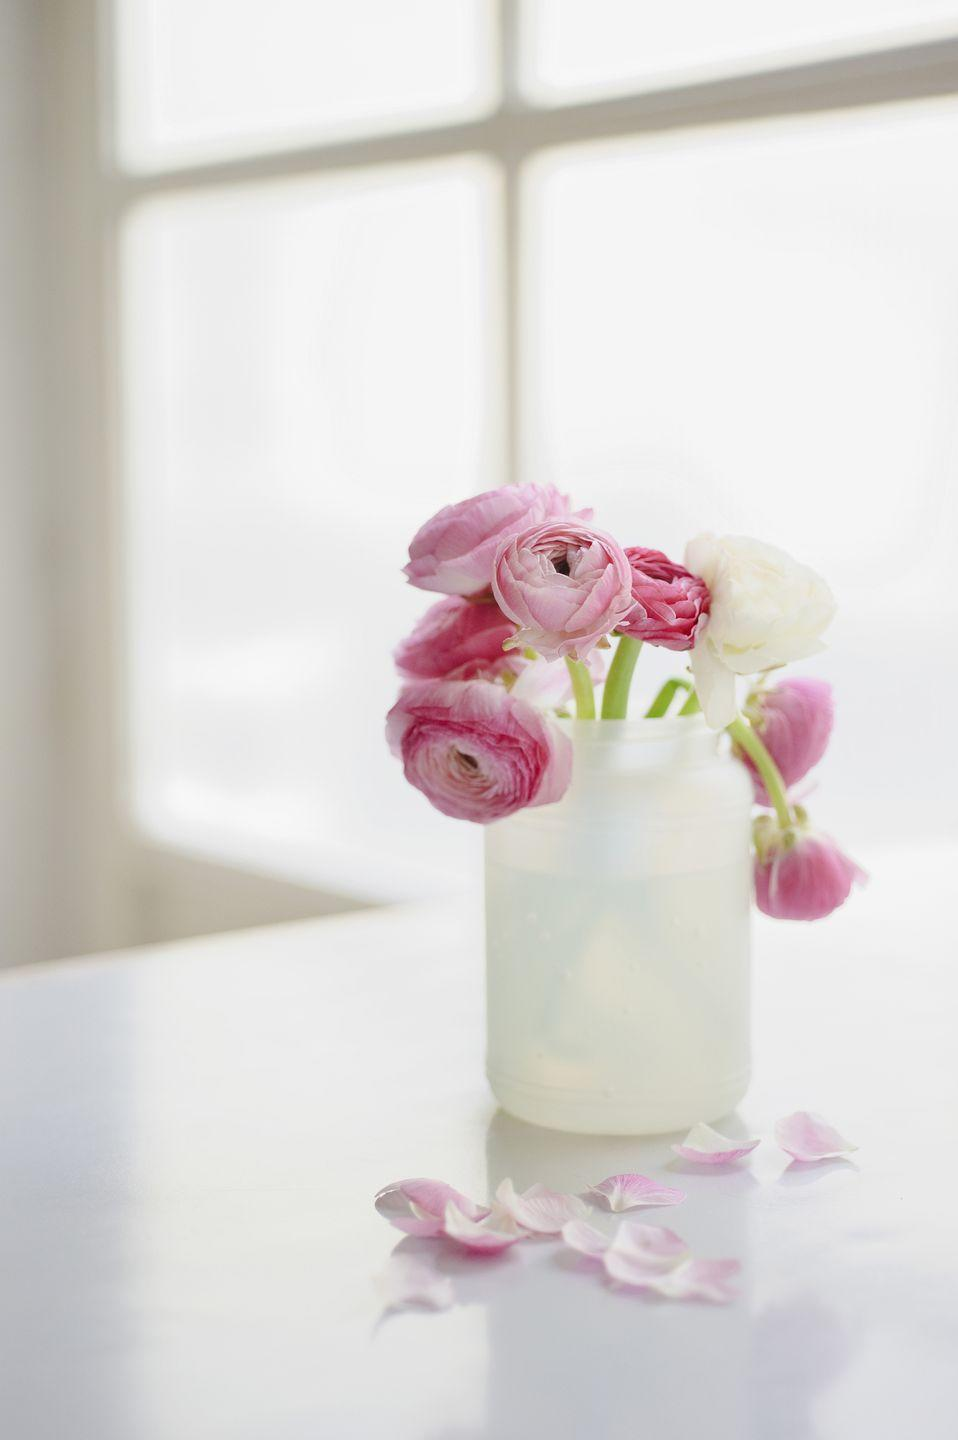 "<p>If you've tried everything from a <a href=""https://www.countryliving.com/gardening/a35326/make-fresh-flowers-last-longer/"" rel=""nofollow noopener"" target=""_blank"" data-ylk=""slk:spritz of hairspray"" class=""link rapid-noclick-resp"">spritz of hairspray</a> to <a href=""https://www.countryliving.com/gardening/a37775/cut-flower-food-recipe/"" rel=""nofollow noopener"" target=""_blank"" data-ylk=""slk:this recipe"" class=""link rapid-noclick-resp"">this recipe</a> to make your petals last longer, but they've finally met their maker, to the compost pile they go. Same goes for dead plants. No green thumb? Try a <a href=""https://www.countryliving.com/gardening/garden-ideas/advice/g1341/indoor-gardening/"" rel=""nofollow noopener"" target=""_blank"" data-ylk=""slk:houseplant"" class=""link rapid-noclick-resp"">houseplant</a> that's harder to kill.</p>"